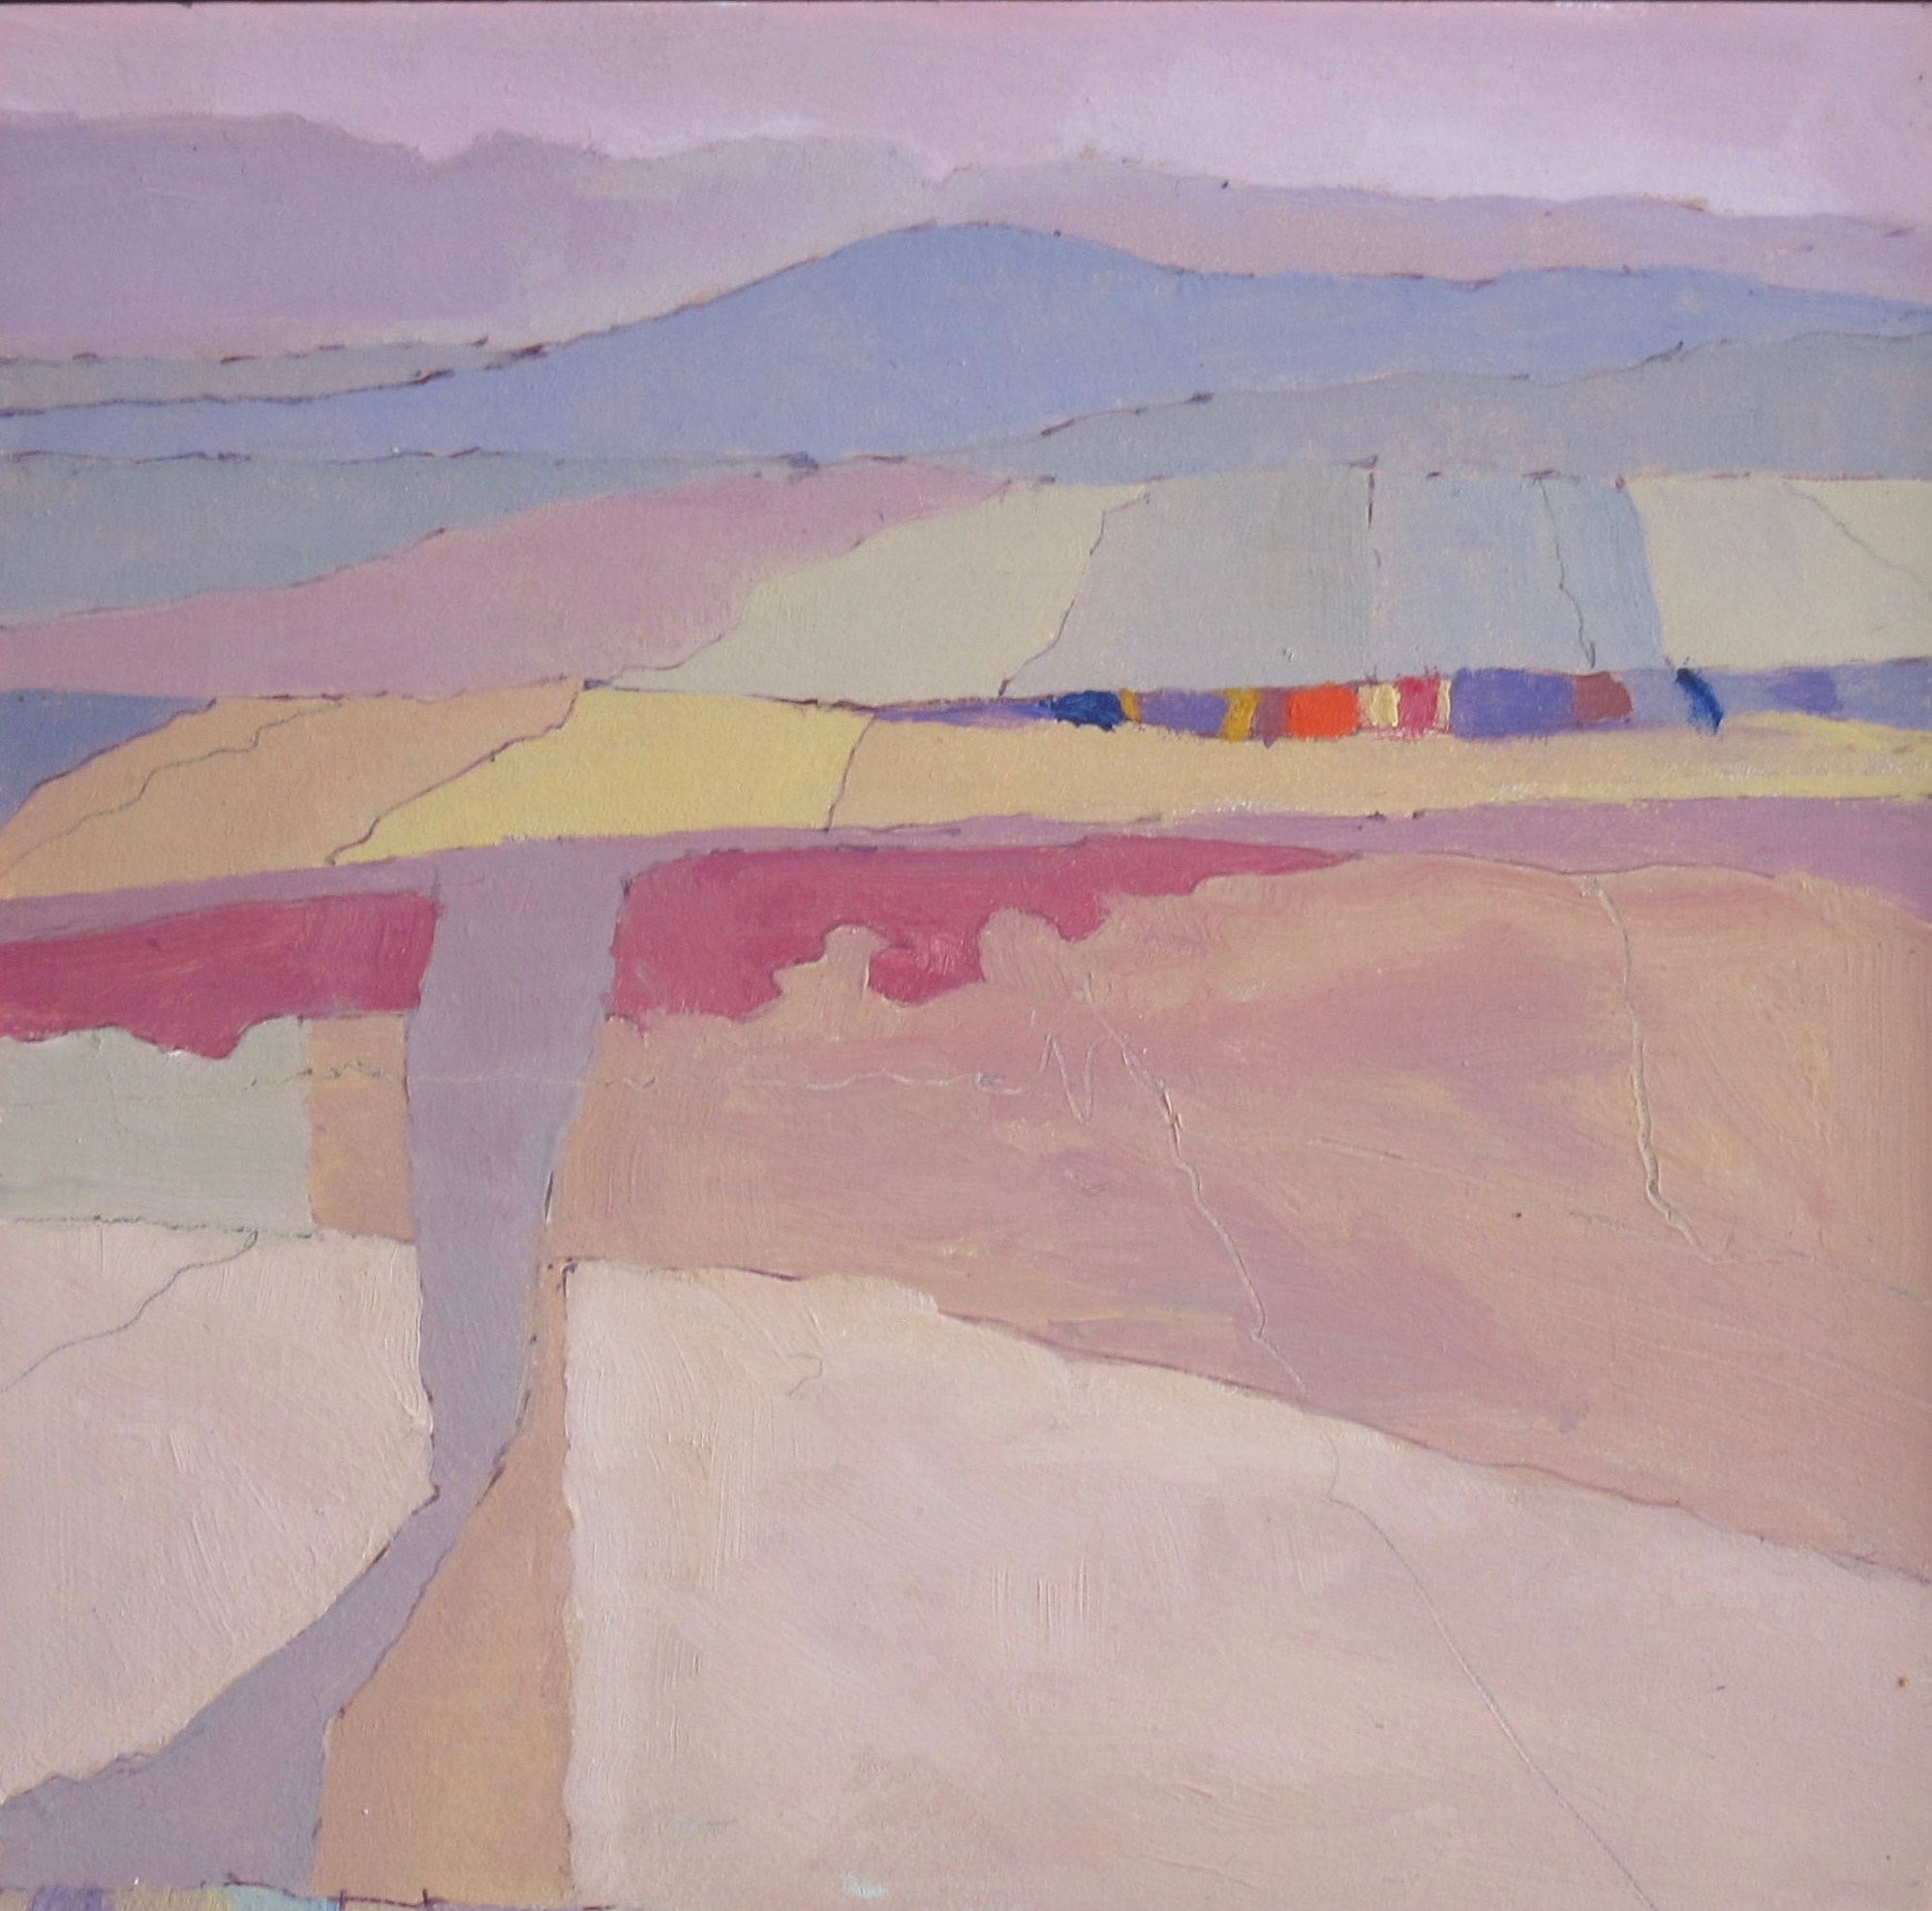 Air Vista#Oil on panel#6 x 6 inches#SOLD